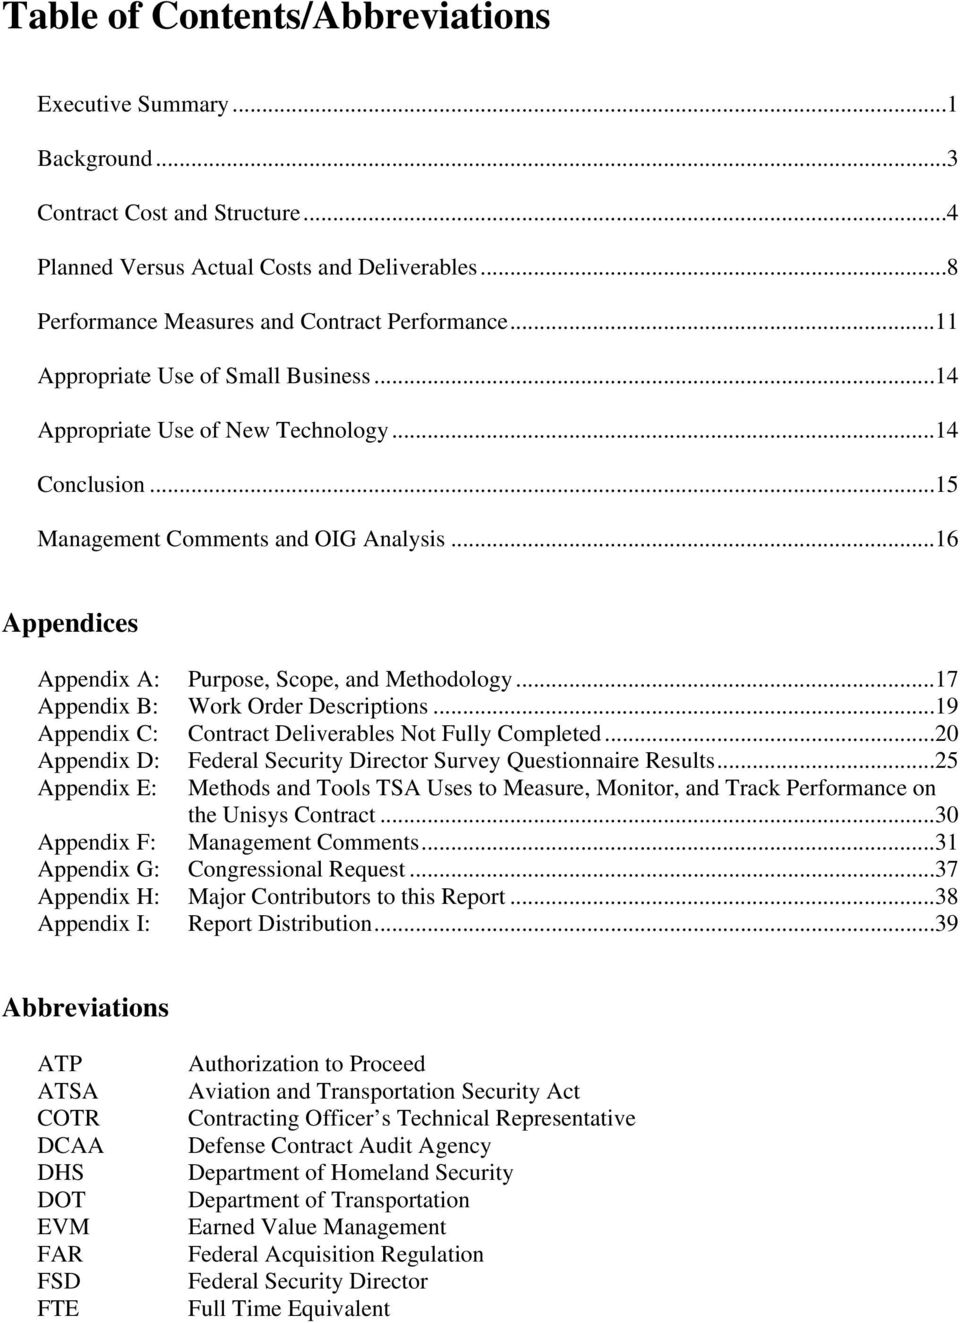 ..17 Appendix B: Work Order Descriptions...19 Appendix C: Contract Deliverables Not Fully Completed...20 Appendix D: Federal Security Director Survey Questionnaire Results.